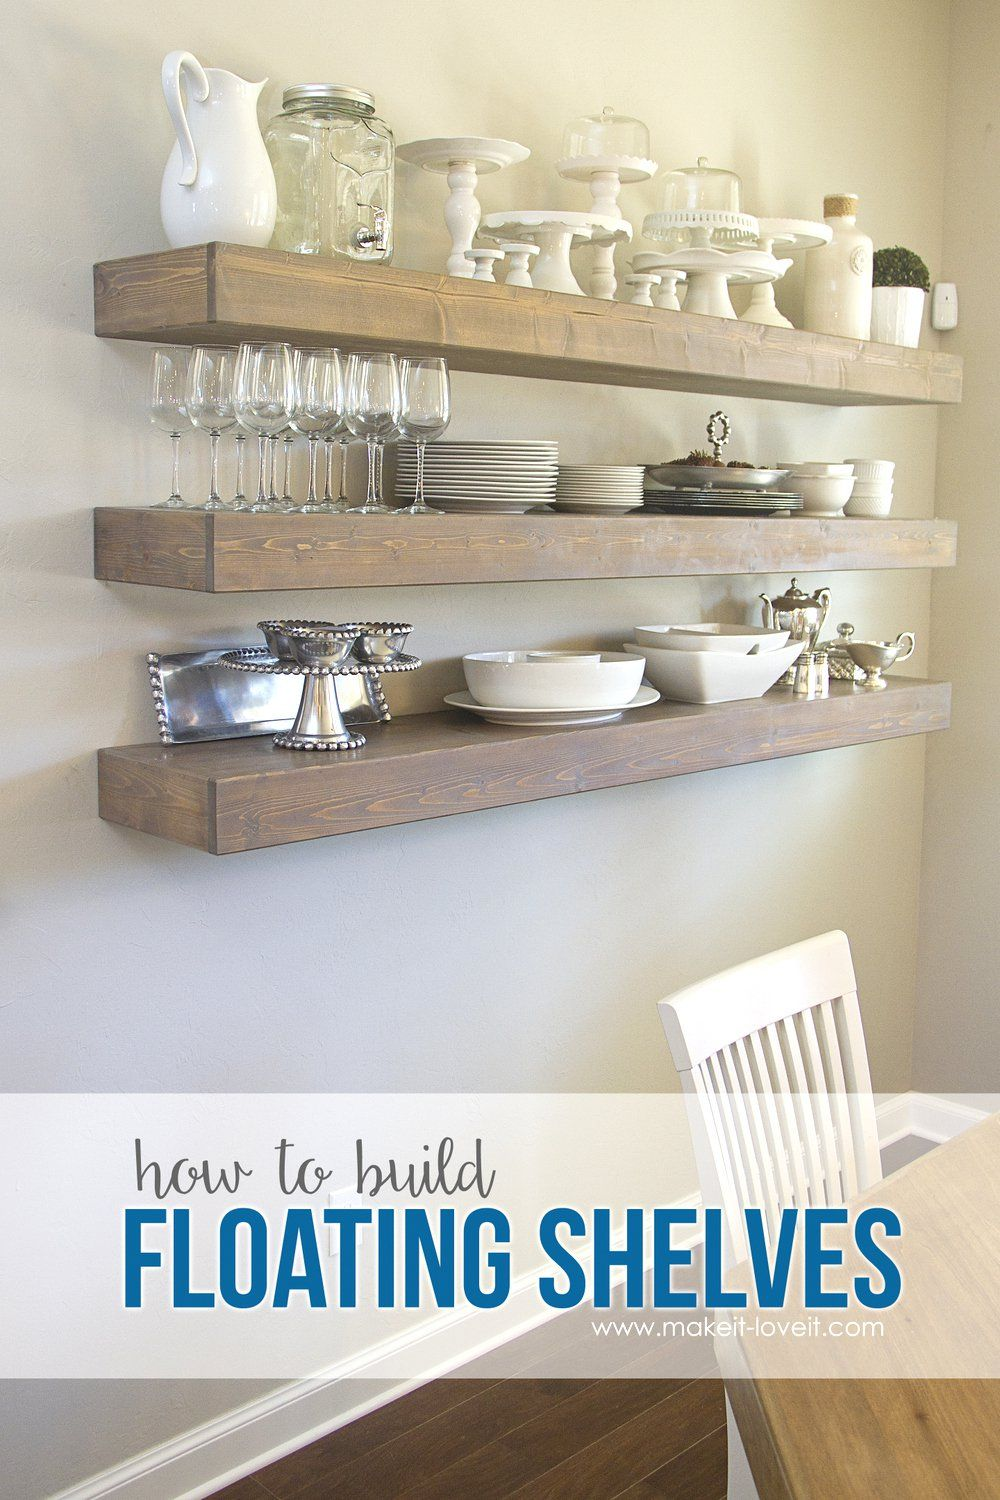 Beau How To Build SIMPLE FLOATING SHELVES (...for Any Room In The House